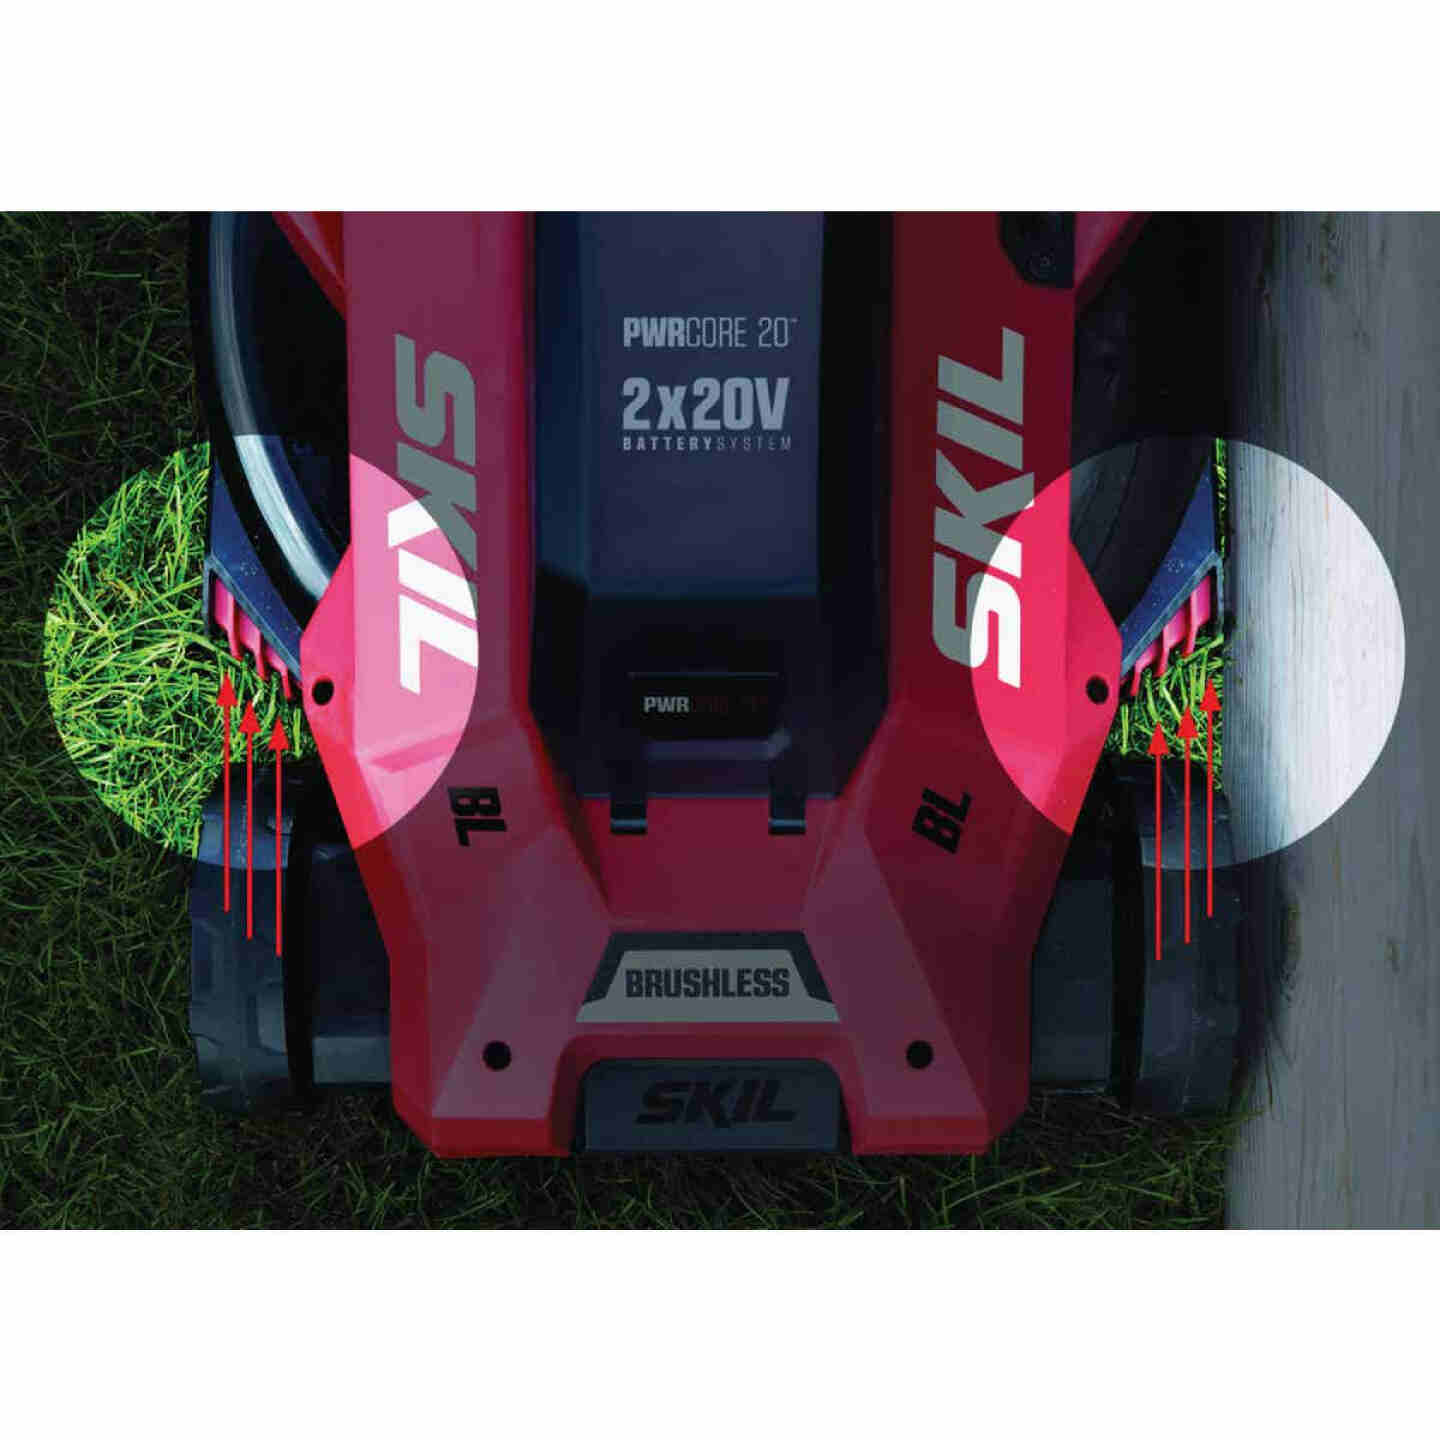 SKIL PwrCore 20V Brushless Push Lawn Mower with Two 4.0 Ah Batteries and Dual Port Charger Image 5